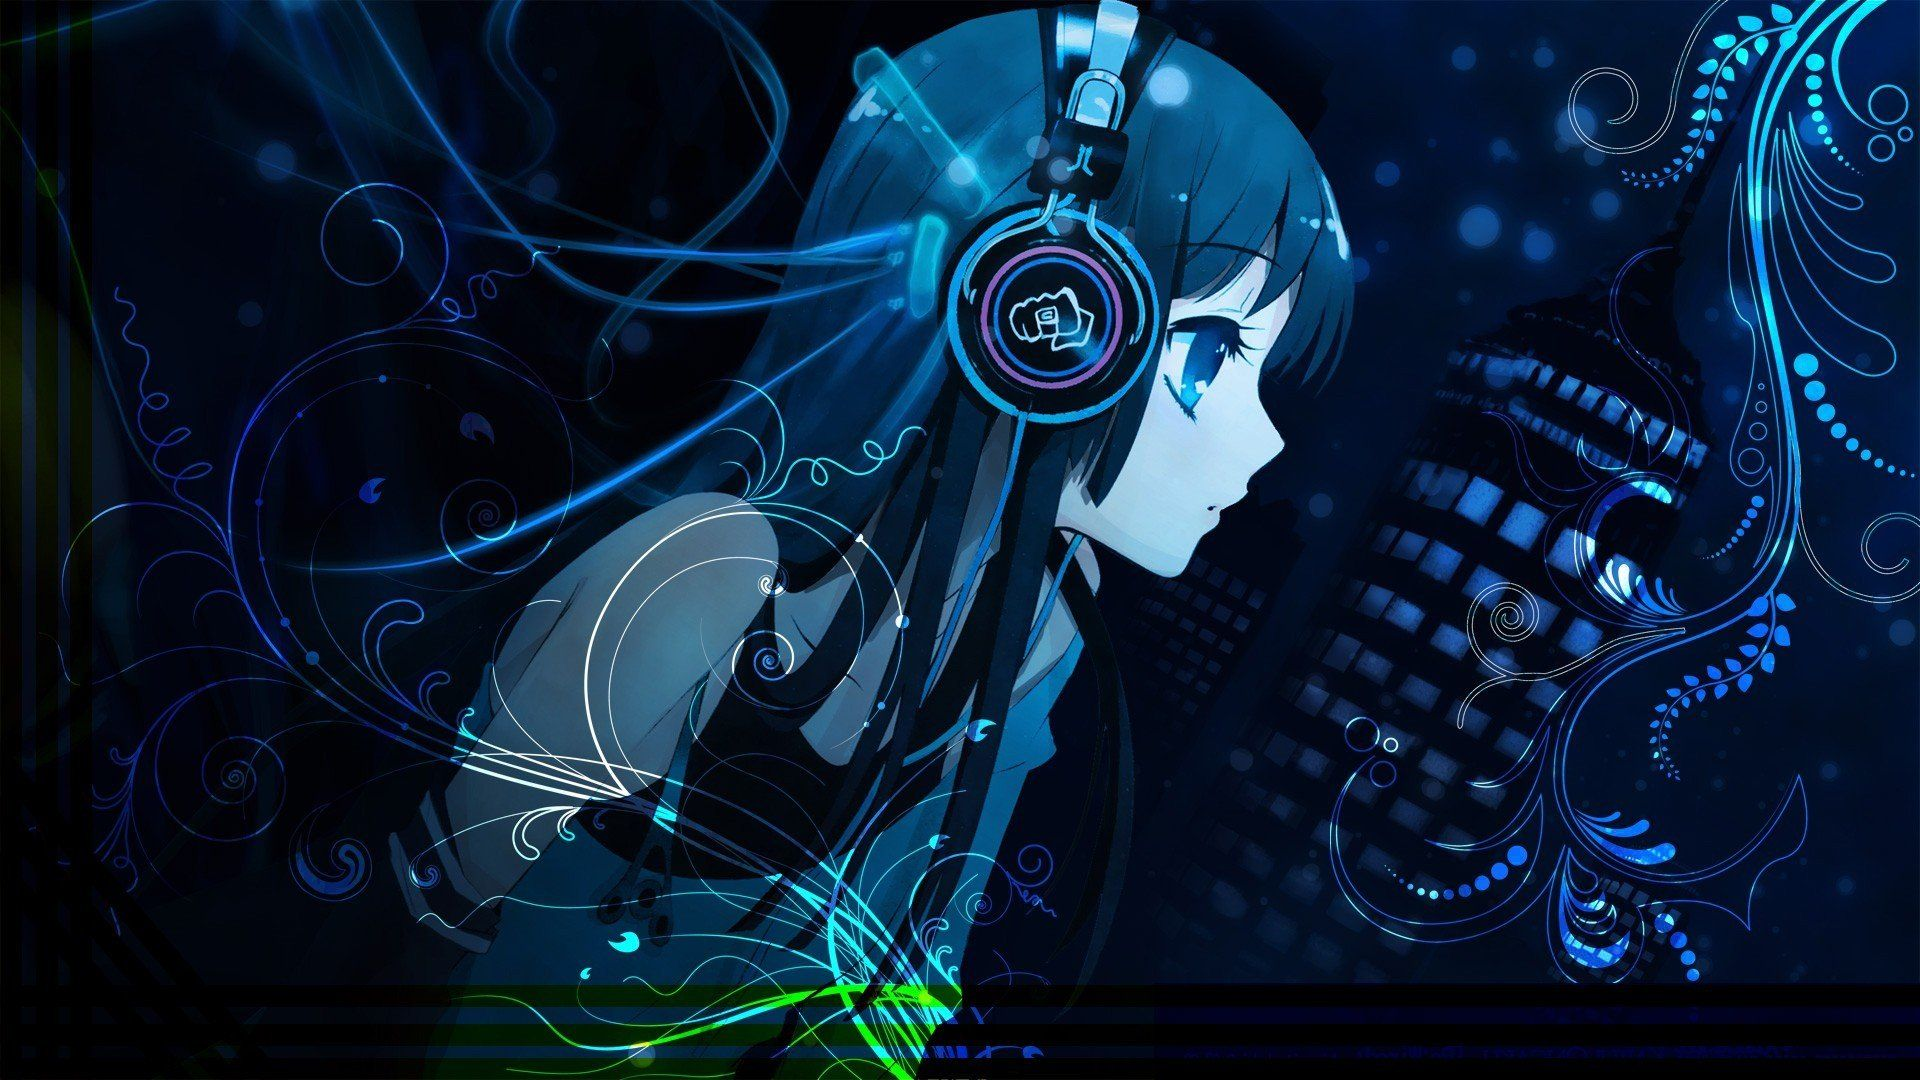 Nightcore Wallpaper Hd